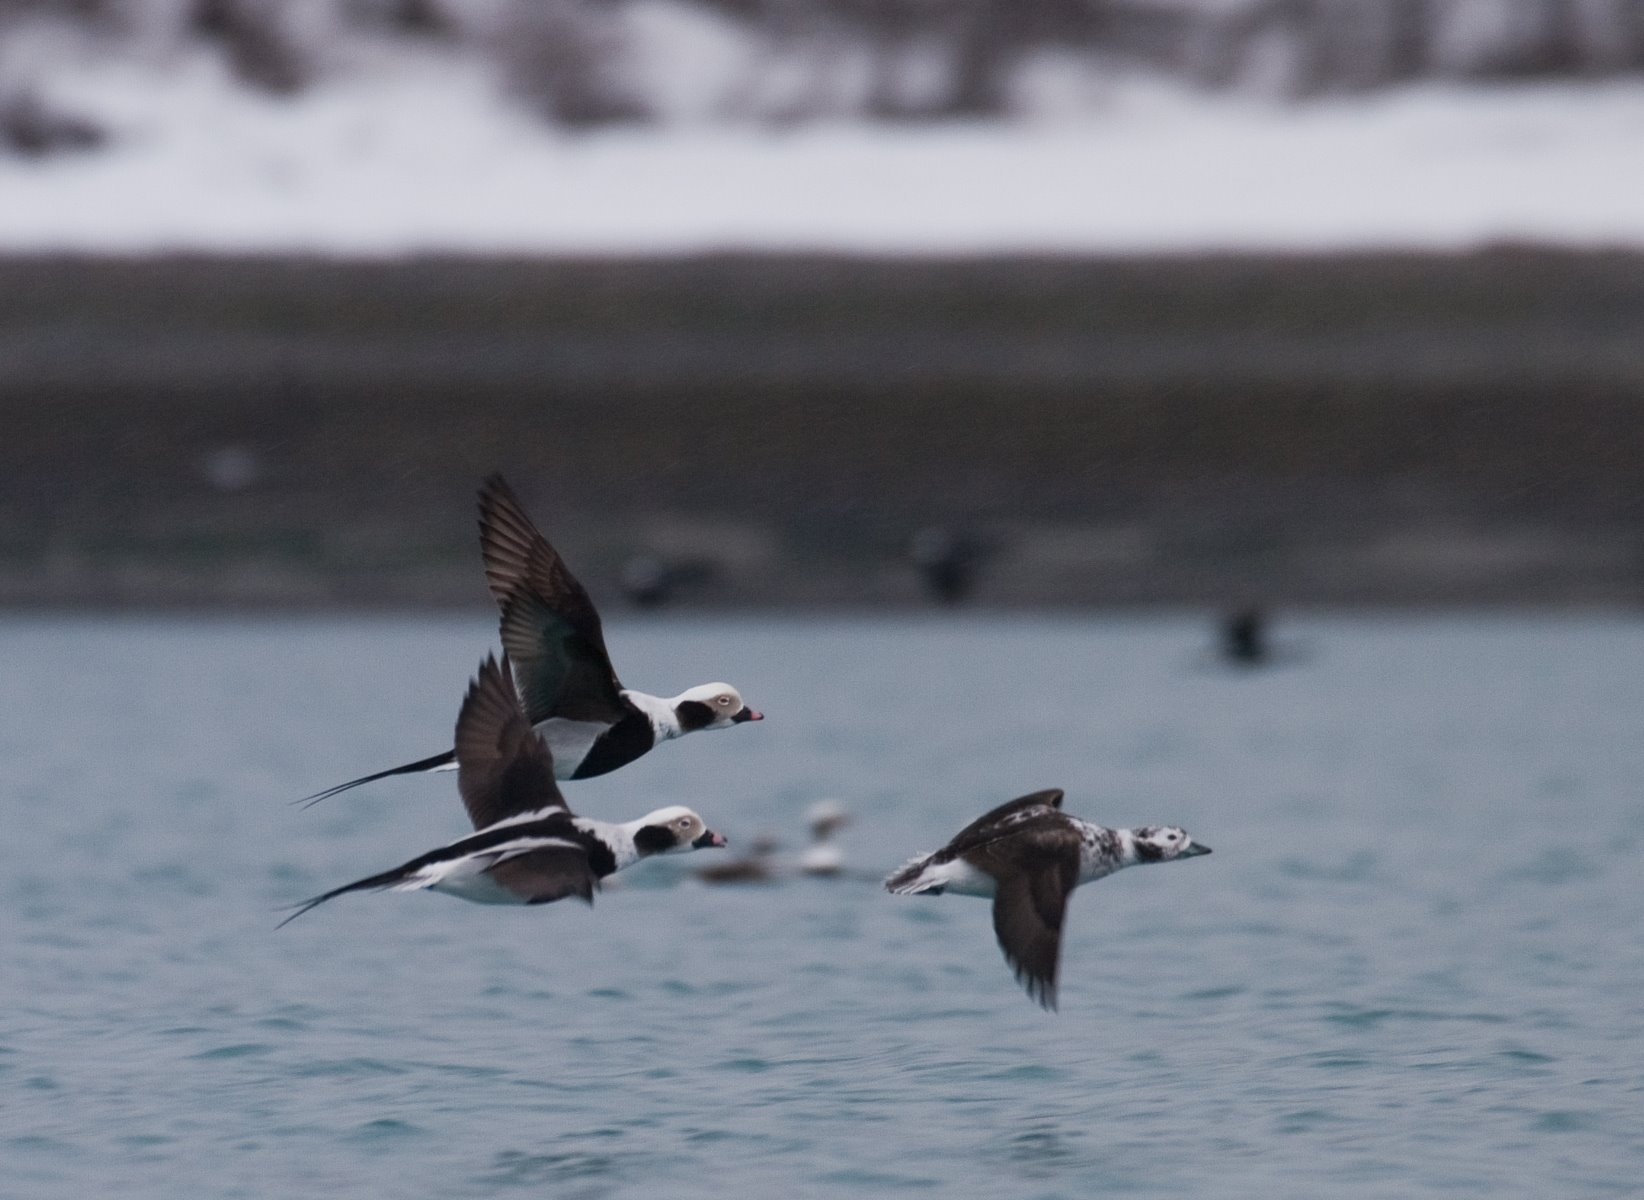 Long-tailed Ducks, formerly called Oldsquaws, congregate into groups of many hundreds of birds during the spring.